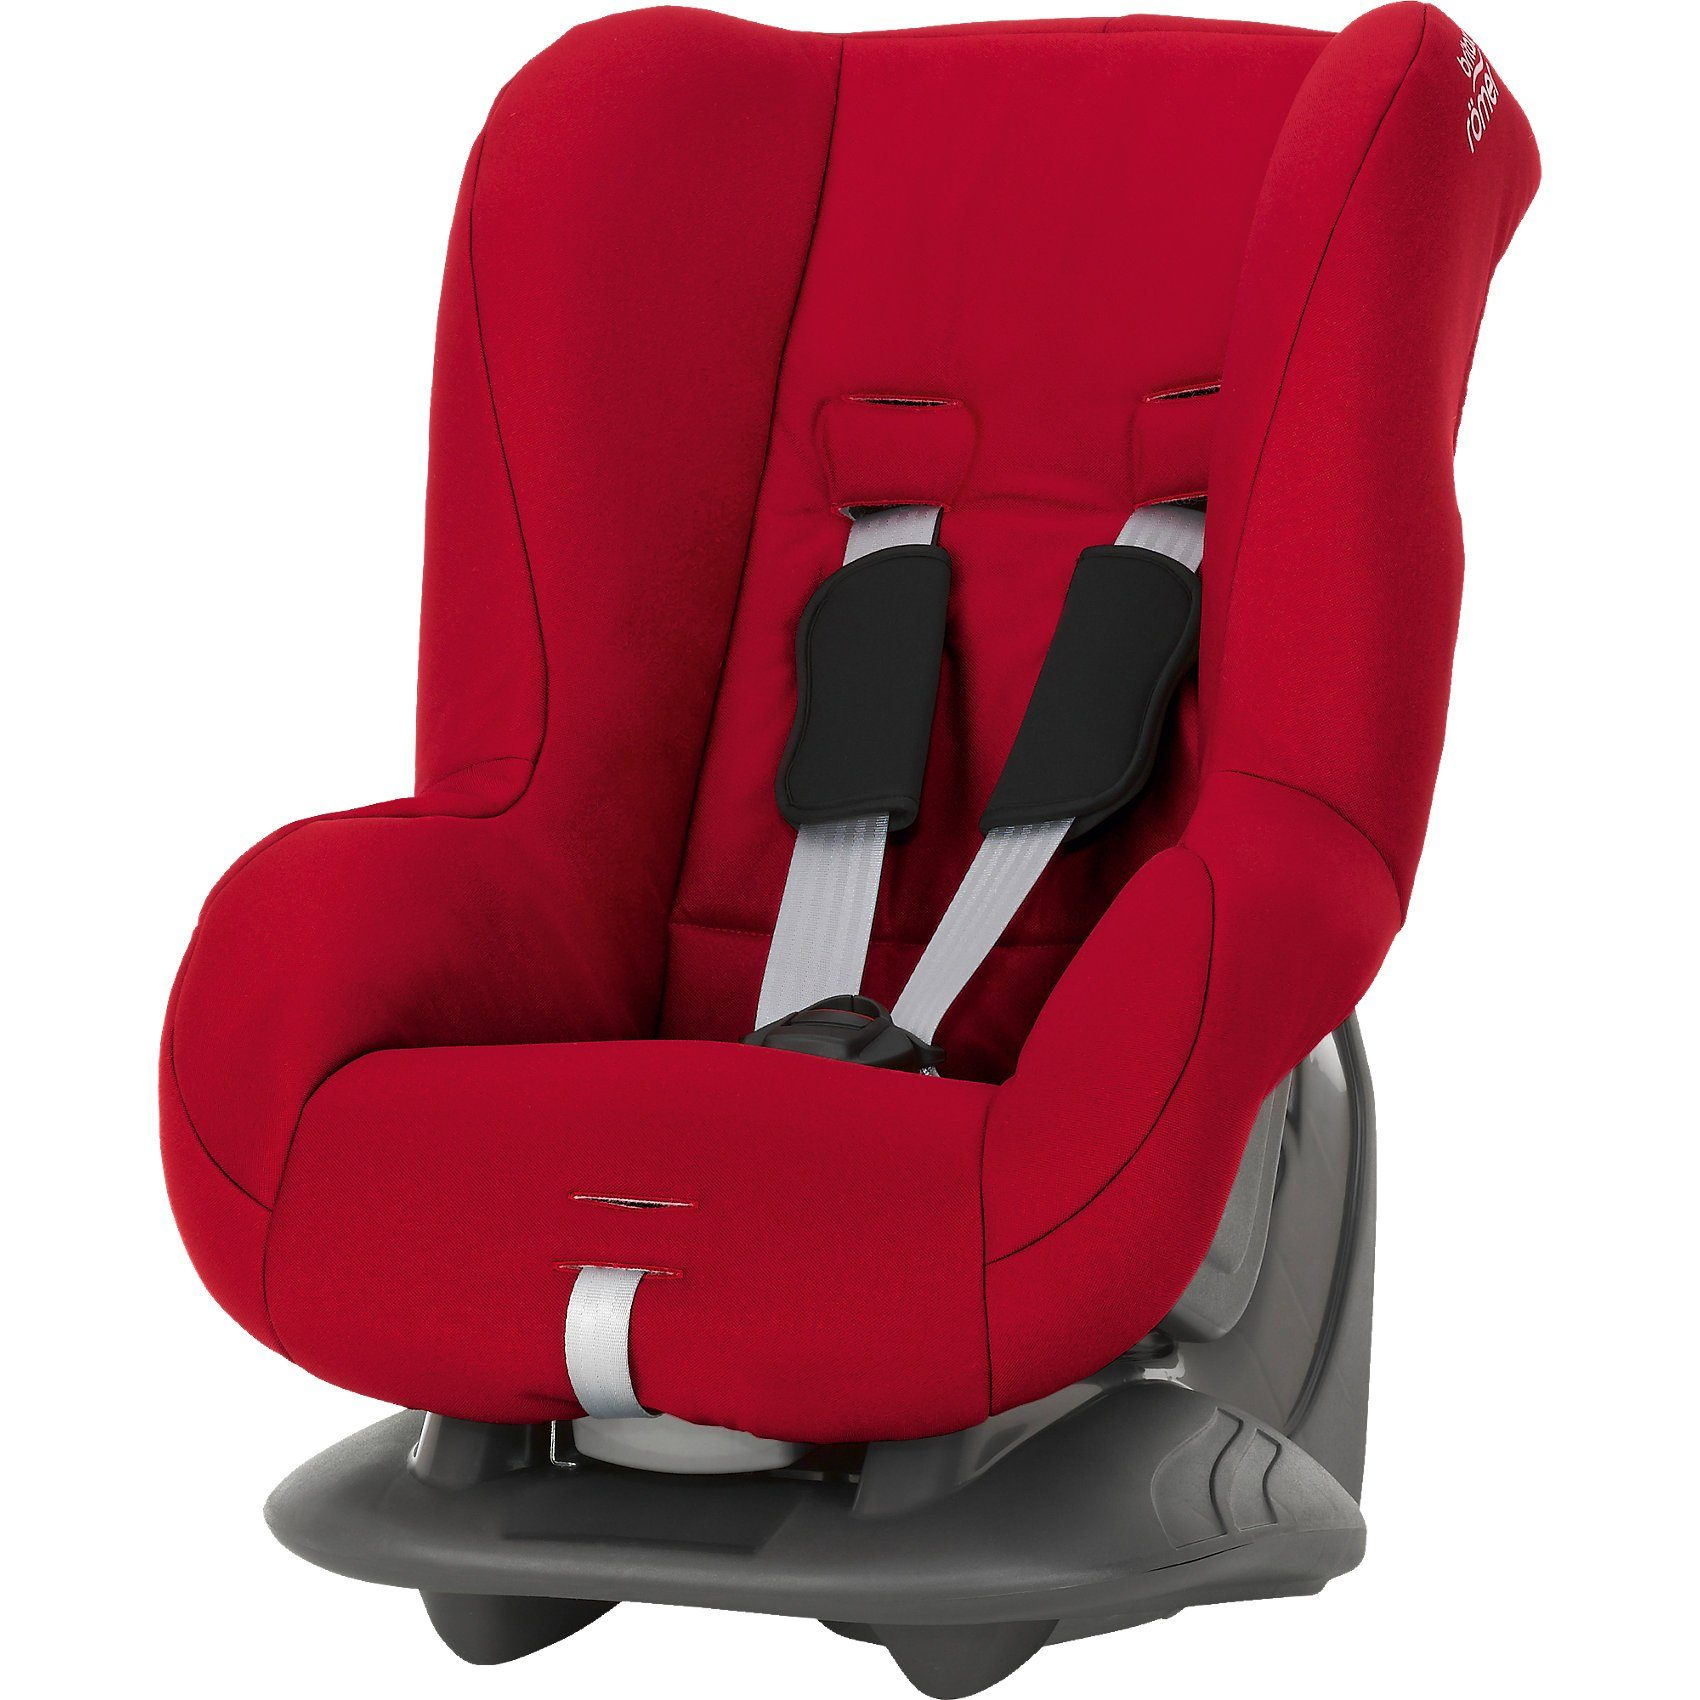 Britax Auto-Kindersitz Eclipse, Flame Red, 2016